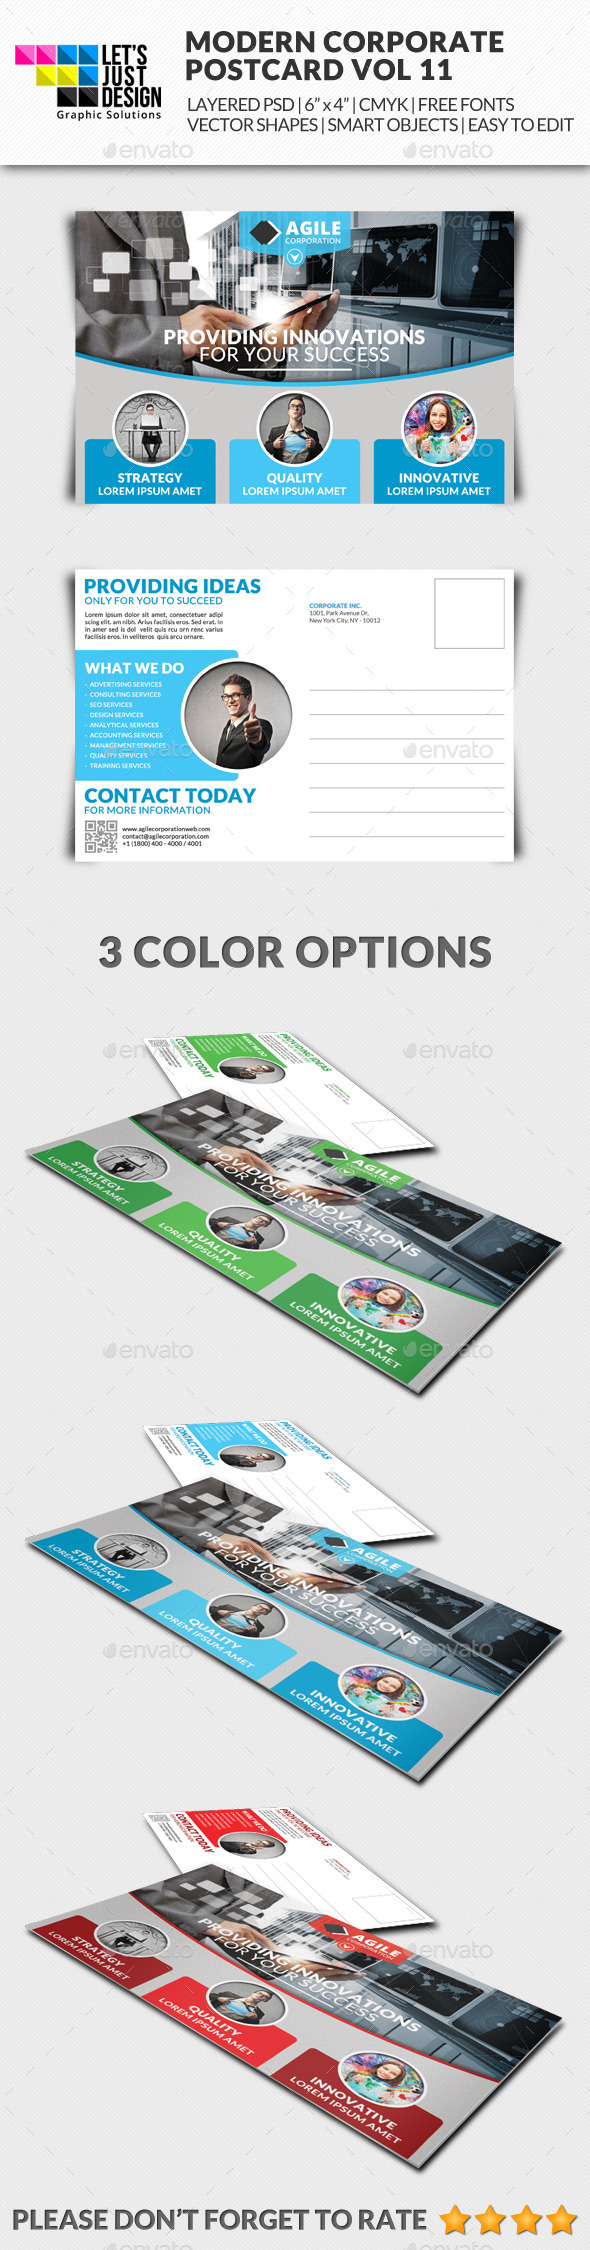 Corporate Postcard Template Vol 11 - Miscellaneous Print Templates